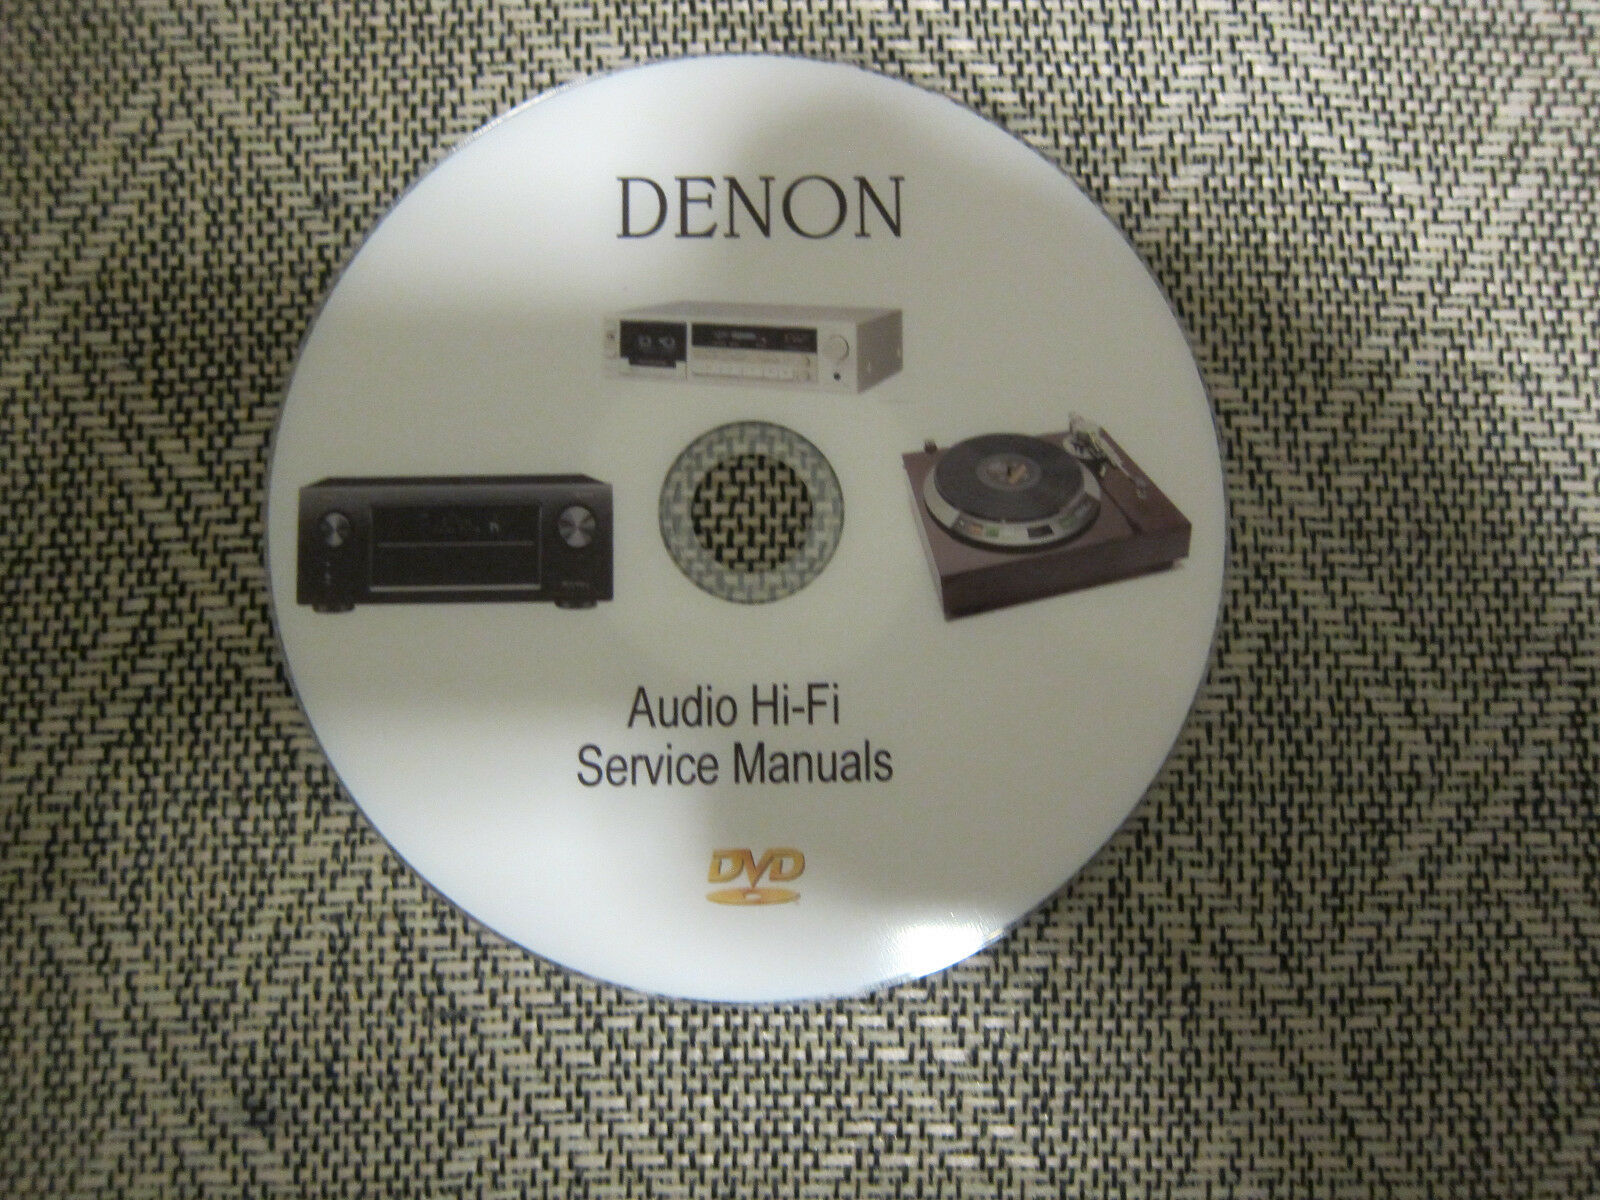 Denon audio video hi-fi Service manuals Schematics on 1 dvd in pdf format 1  of 2Only 3 available See More